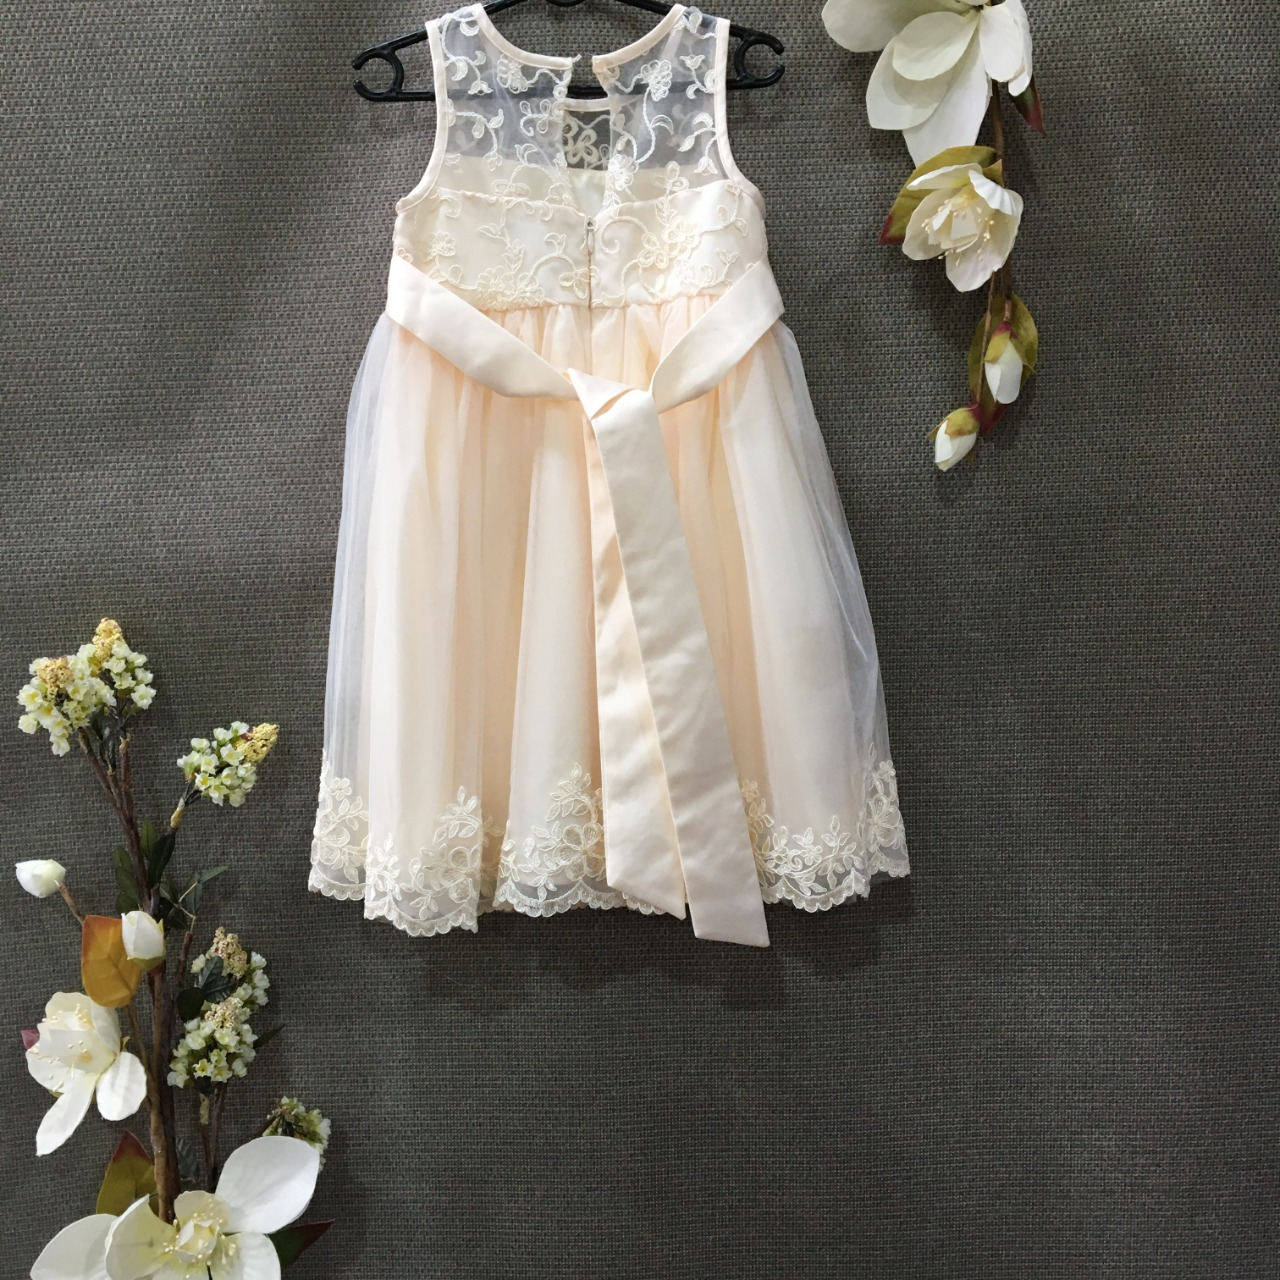 Ollies Place, Toddlers Formal Dress, Size 2, Cream